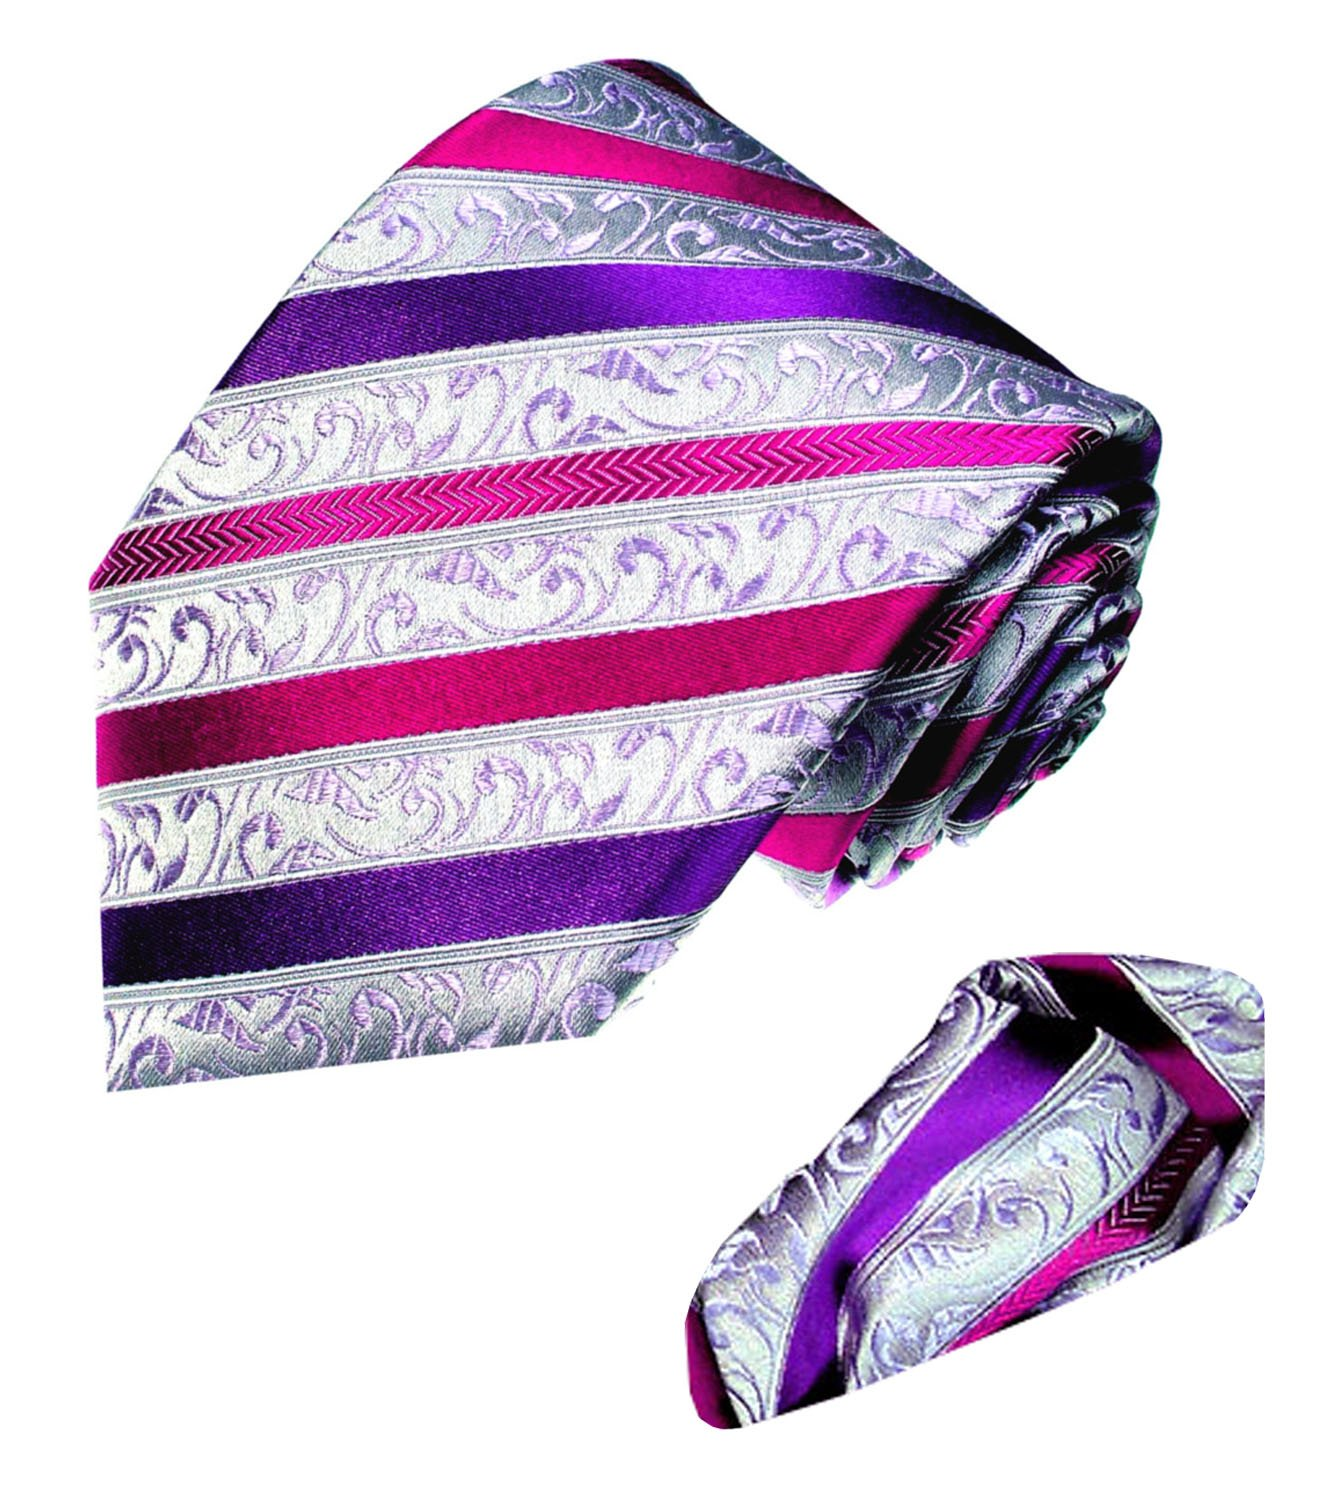 LORENZO CANA - Luxury Italian 100% Pure Silk Business Tie Hanky Set Silver Purple Stripes Necktie - 8443302 by LORENZO CANA